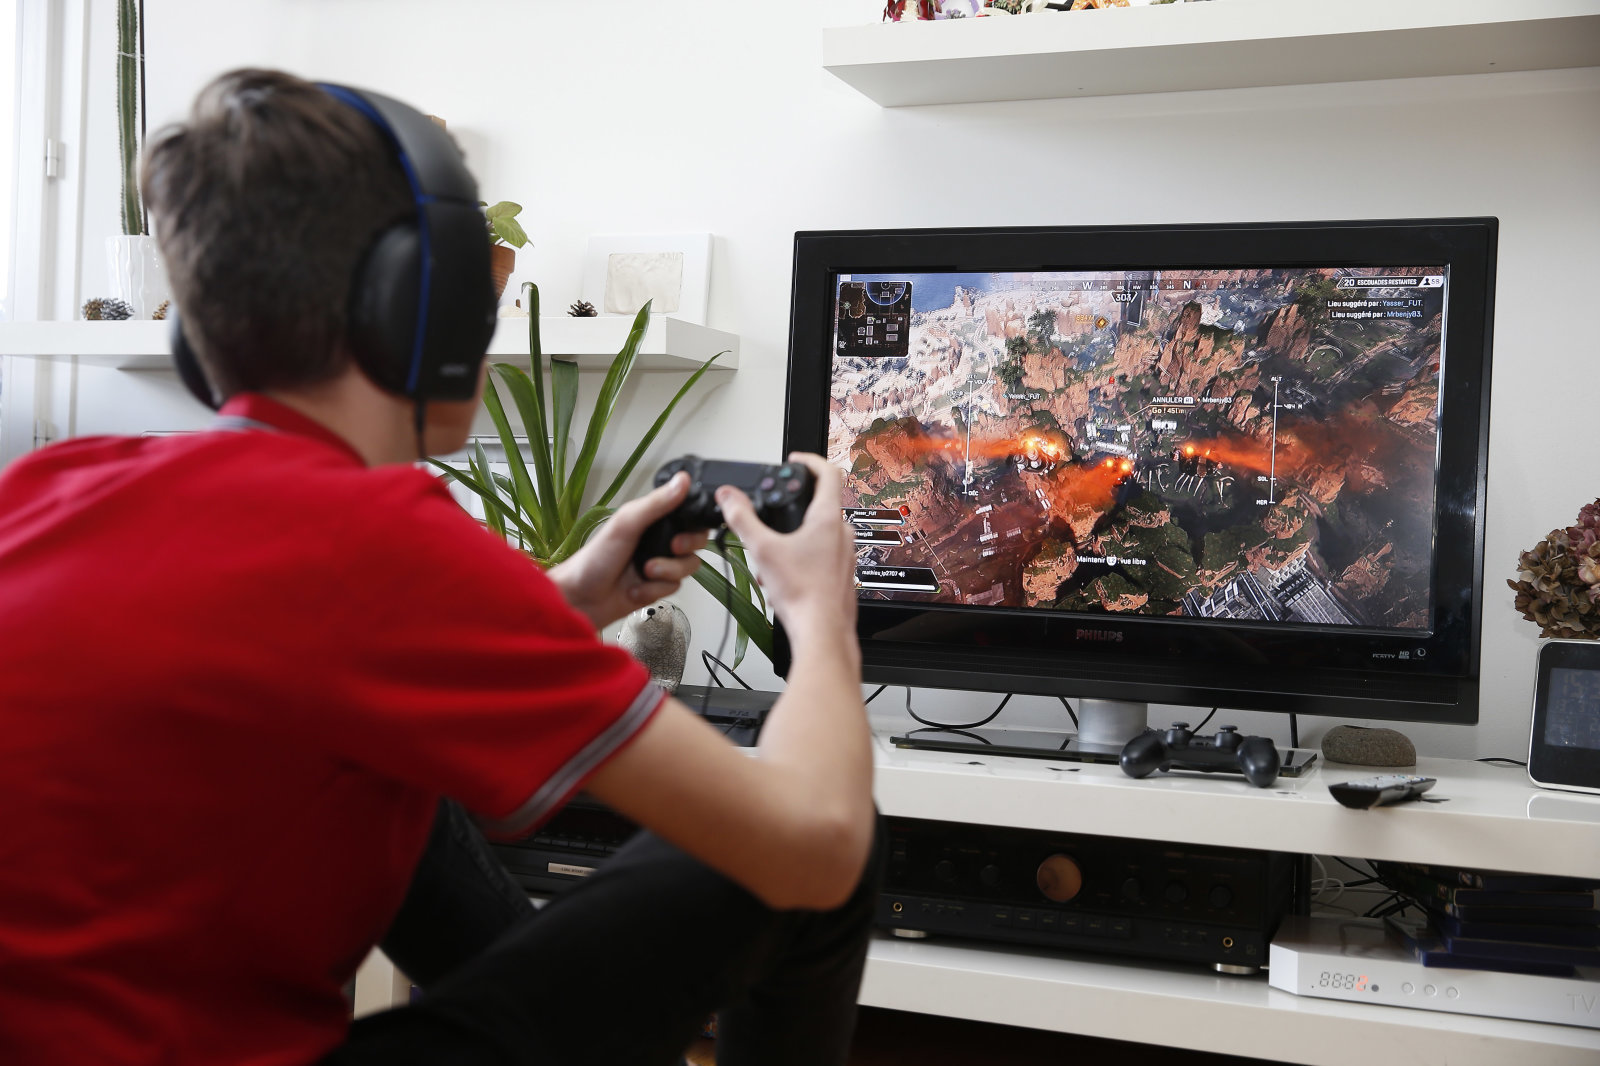 PARIS, FRANCE - MARCH 13: In this photo illustration a teenager plays the video game Apex Legends developed by Respawn Entertainment and published by Electronic Arts (EA) on a Sony PlayStation game console PS4 Pro on March 13, 2019 in Paris, France. Apex Legends, a battle royale type video game continues to break new records every day, and now gathers more than 25 million players around the world. (Photo by Chesnot/Getty Images)